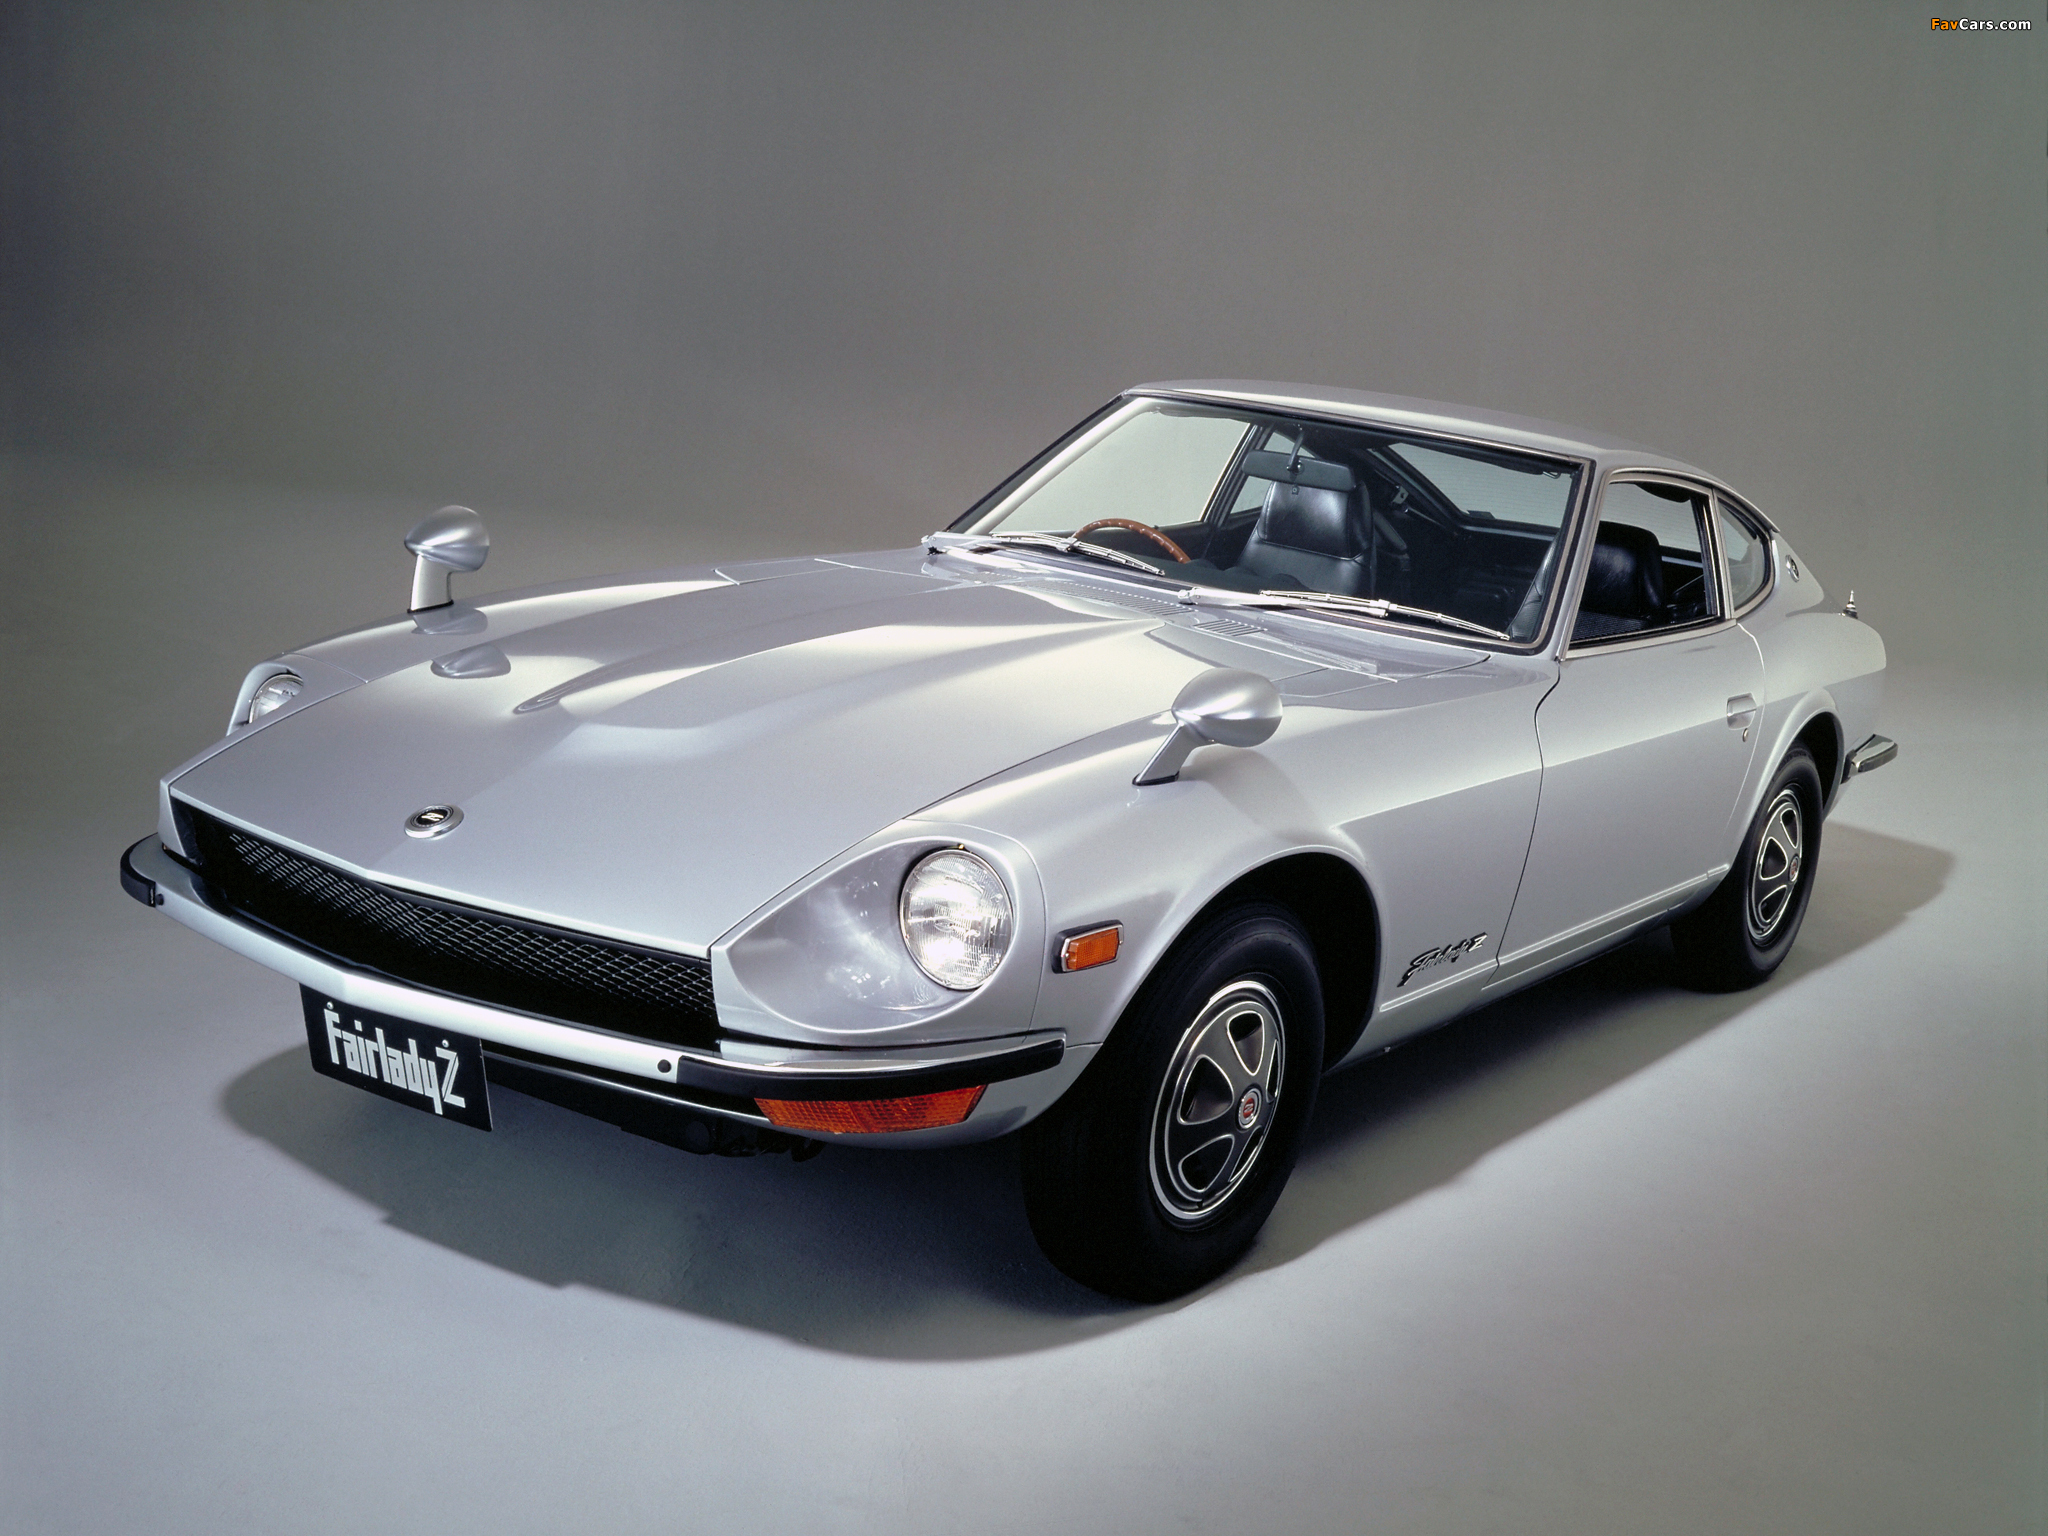 Fairlady 240z hs30 196978 wallpapers nissan fairlady 240z hs30 196978 wallpapers vanachro Choice Image